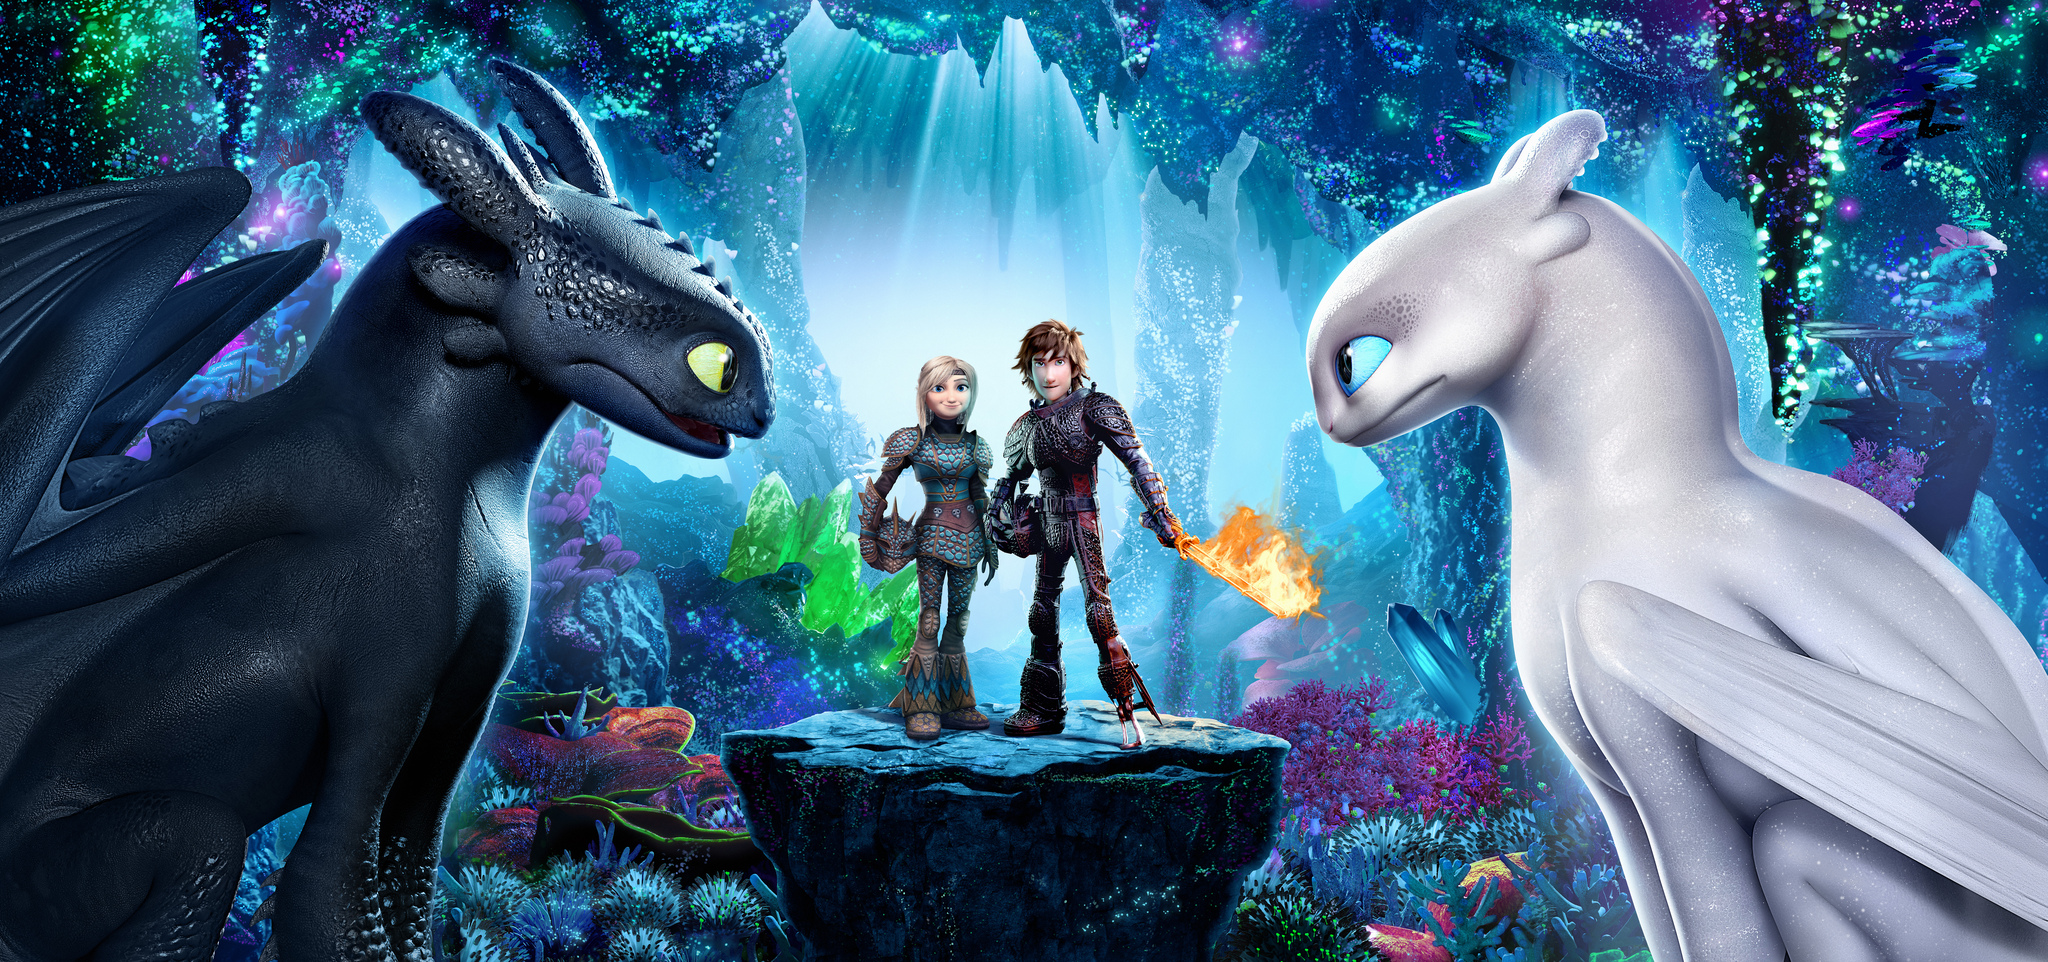 """How to Train Your Dragon 3"" is Still #1 at the Box Office"